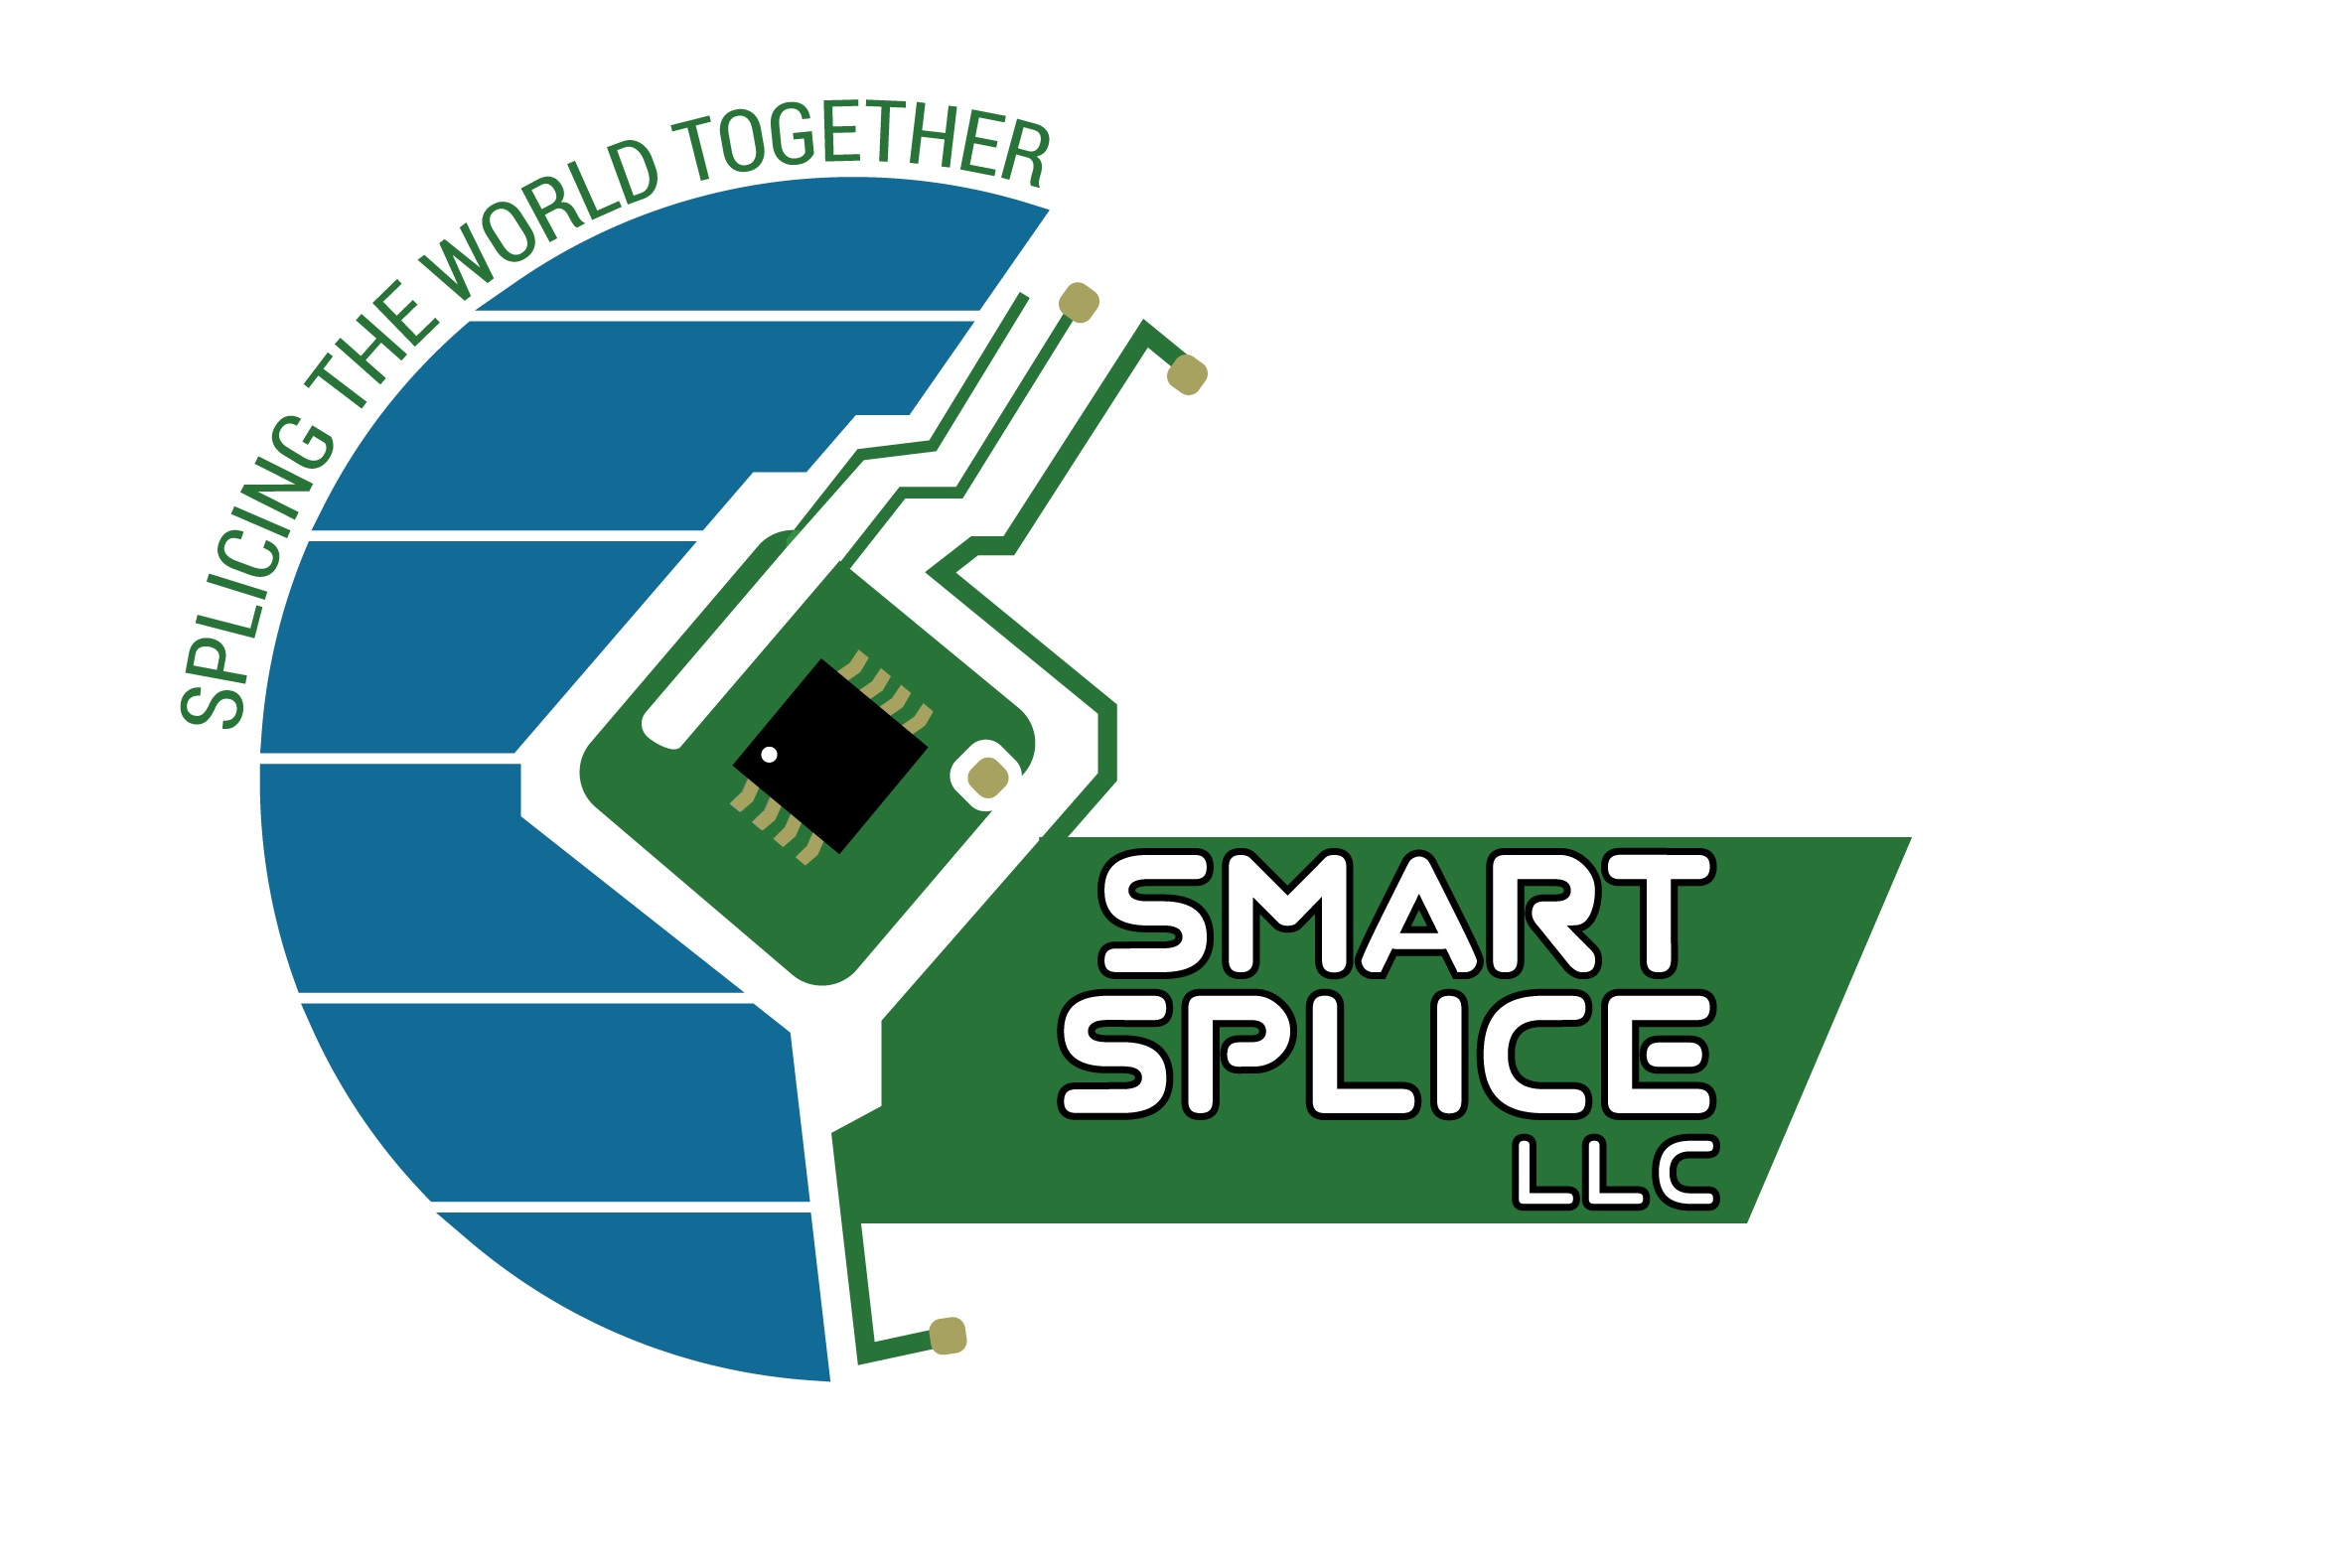 Smt Pcb Manufacturing Products And Services Pcs Waved Plastic Handle Black Circuit Board Anti Static Brush Smart Splice Llc